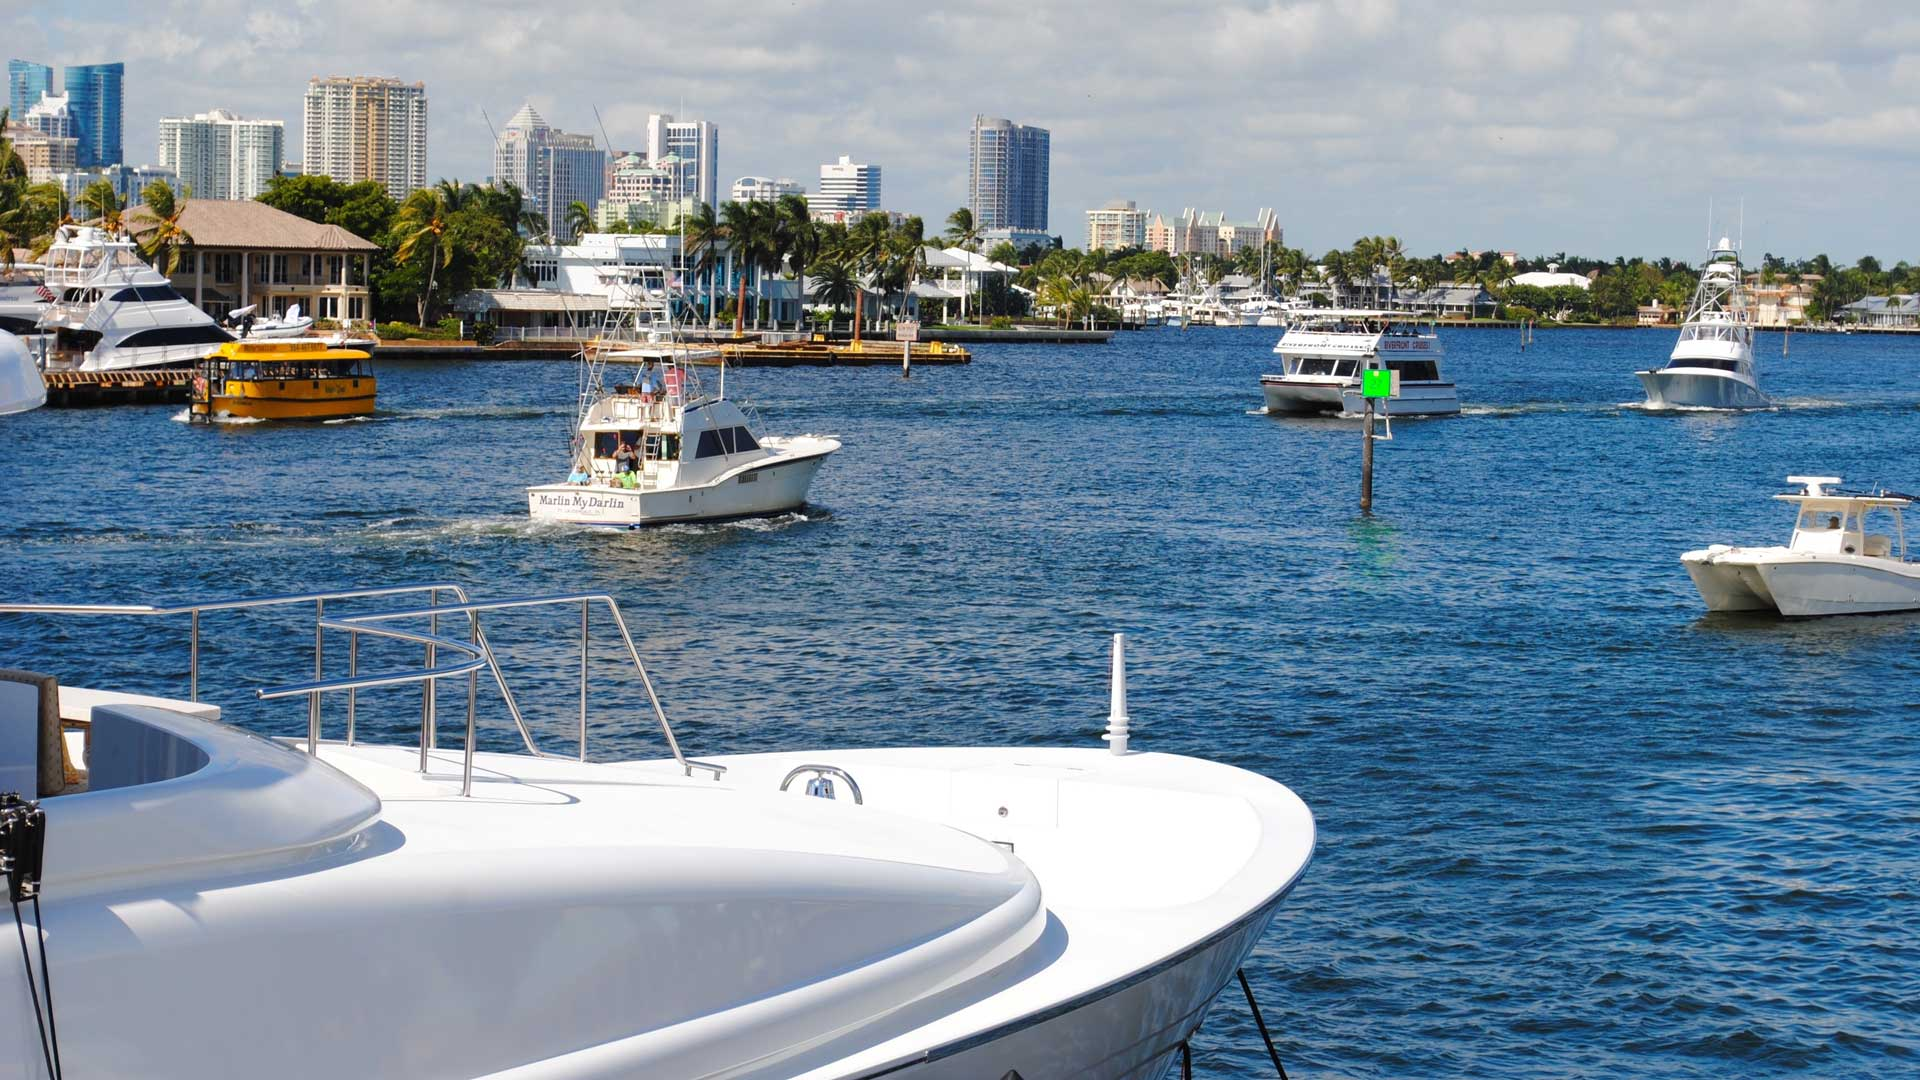 Fort Lauderdale Boats and Ocean